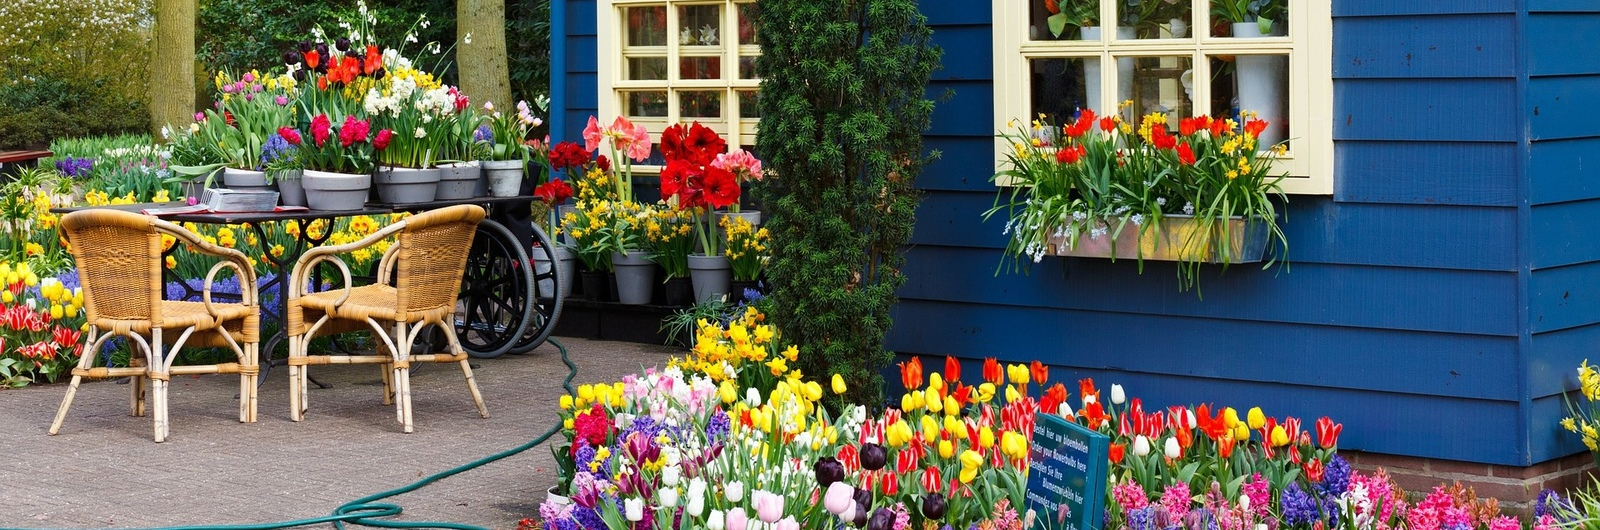 city header netherlands house tulips